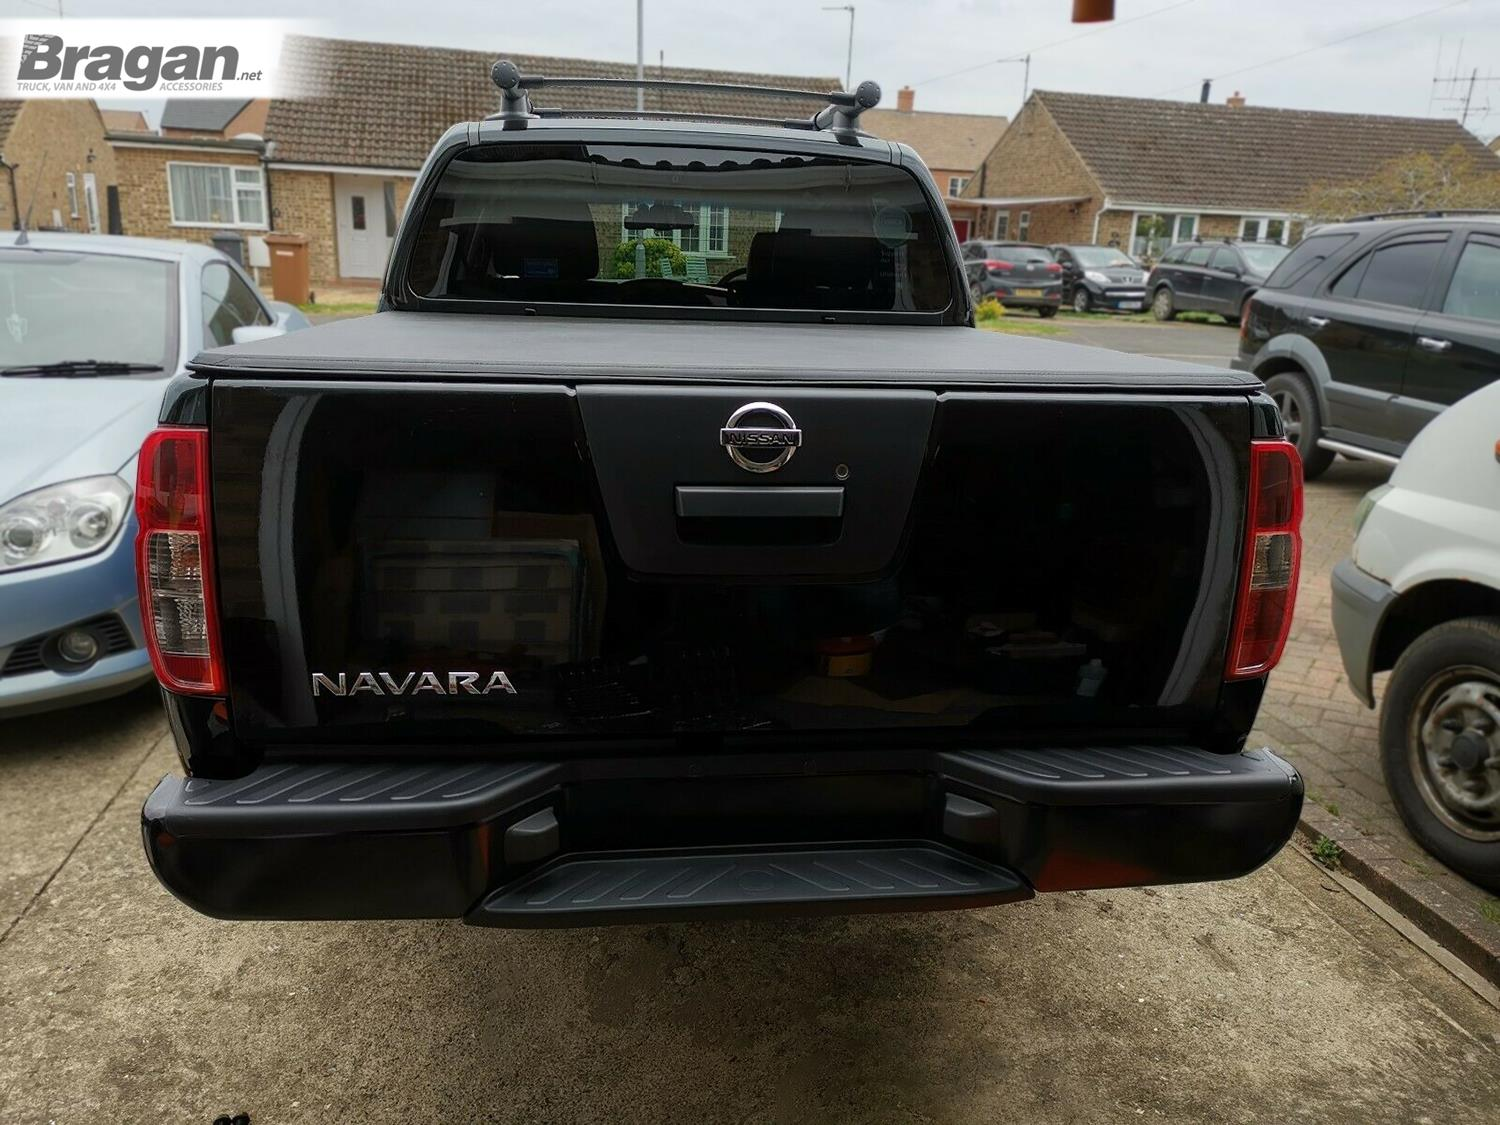 Rear Bumper For Nissan Navara D40 2005 2016 Back Step Guard Steel Black 4x4 617201255643 Ebay